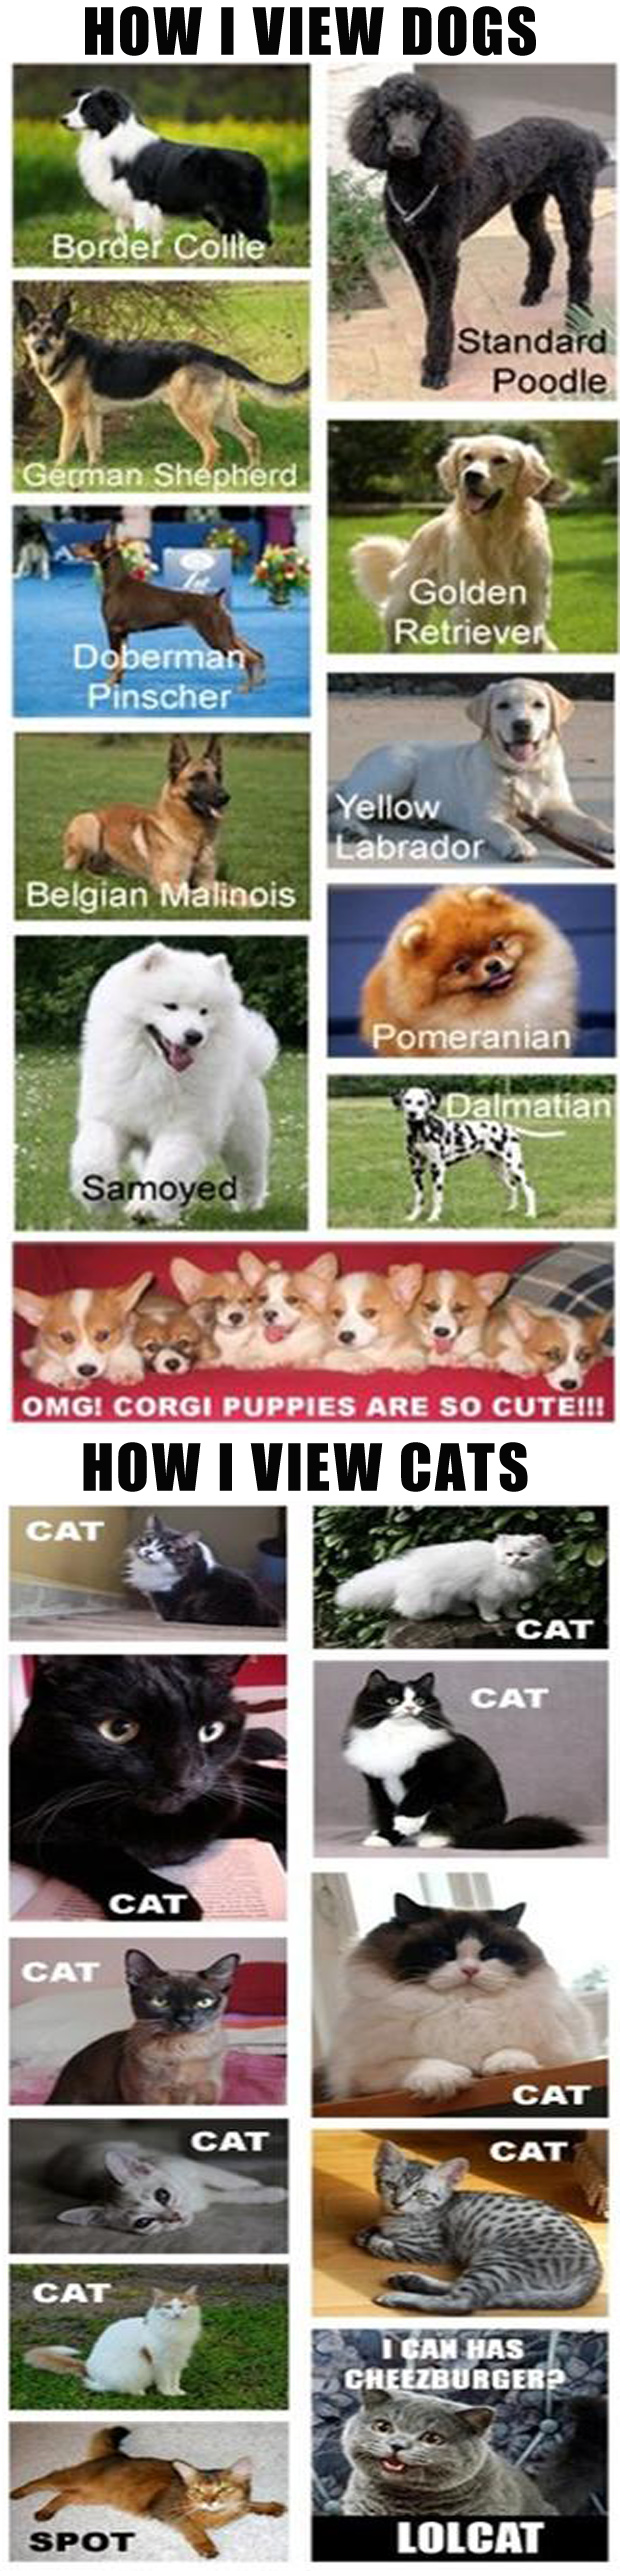 z how i view dogs, how i view cats